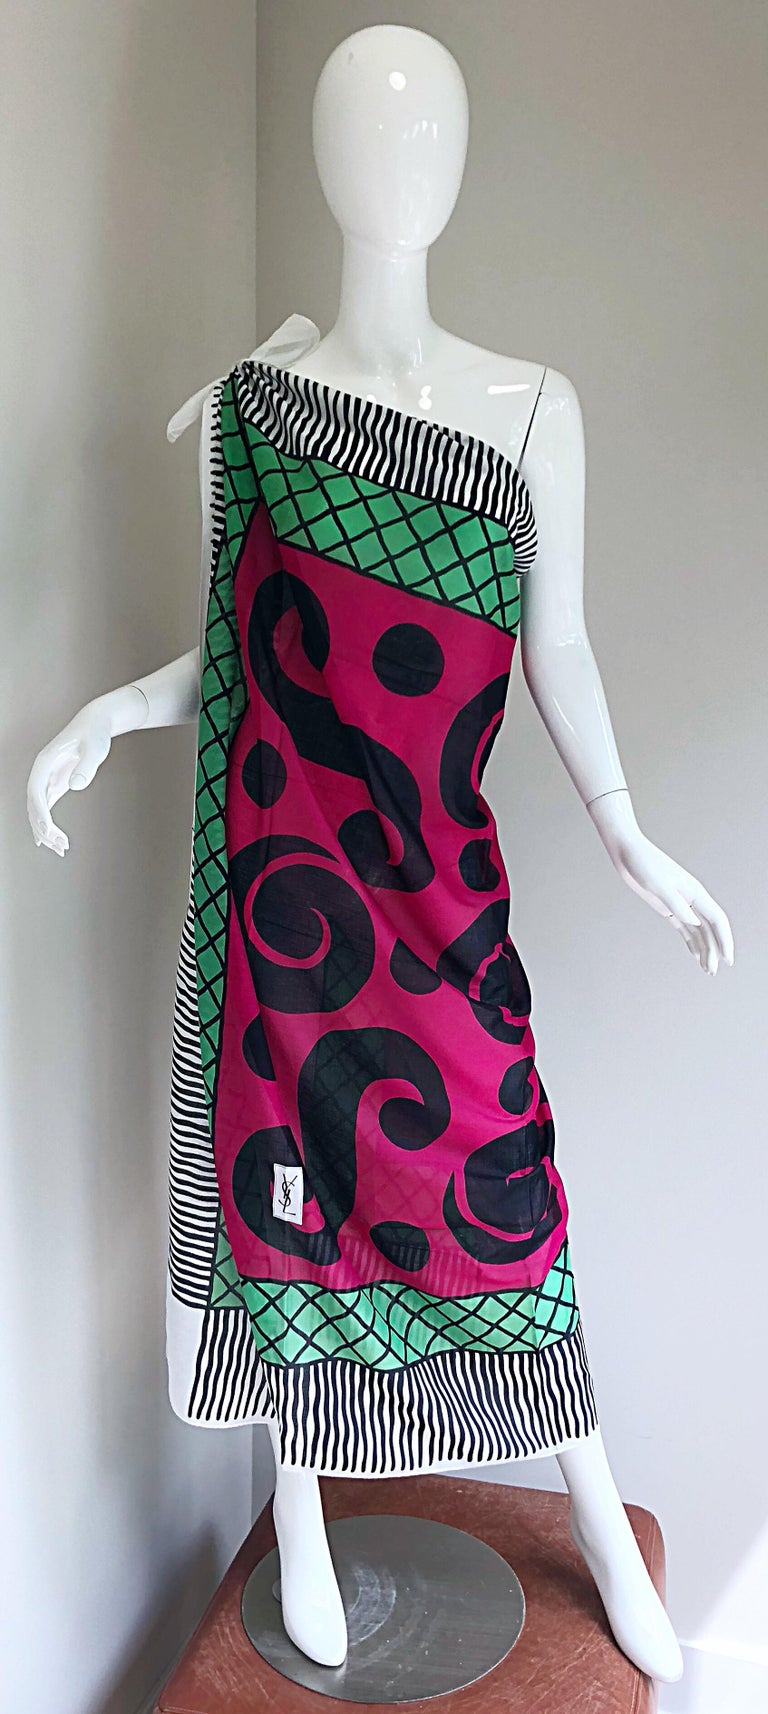 Iconic vintage YSL Yves Saint Laurent lightweight cotton jumbo shawl scarf / parero! Iconic question mark print in vibrant tones of raspberry, black green and white. Can be worn draped across the shoulders, as a wrap skirt, or belted as a one